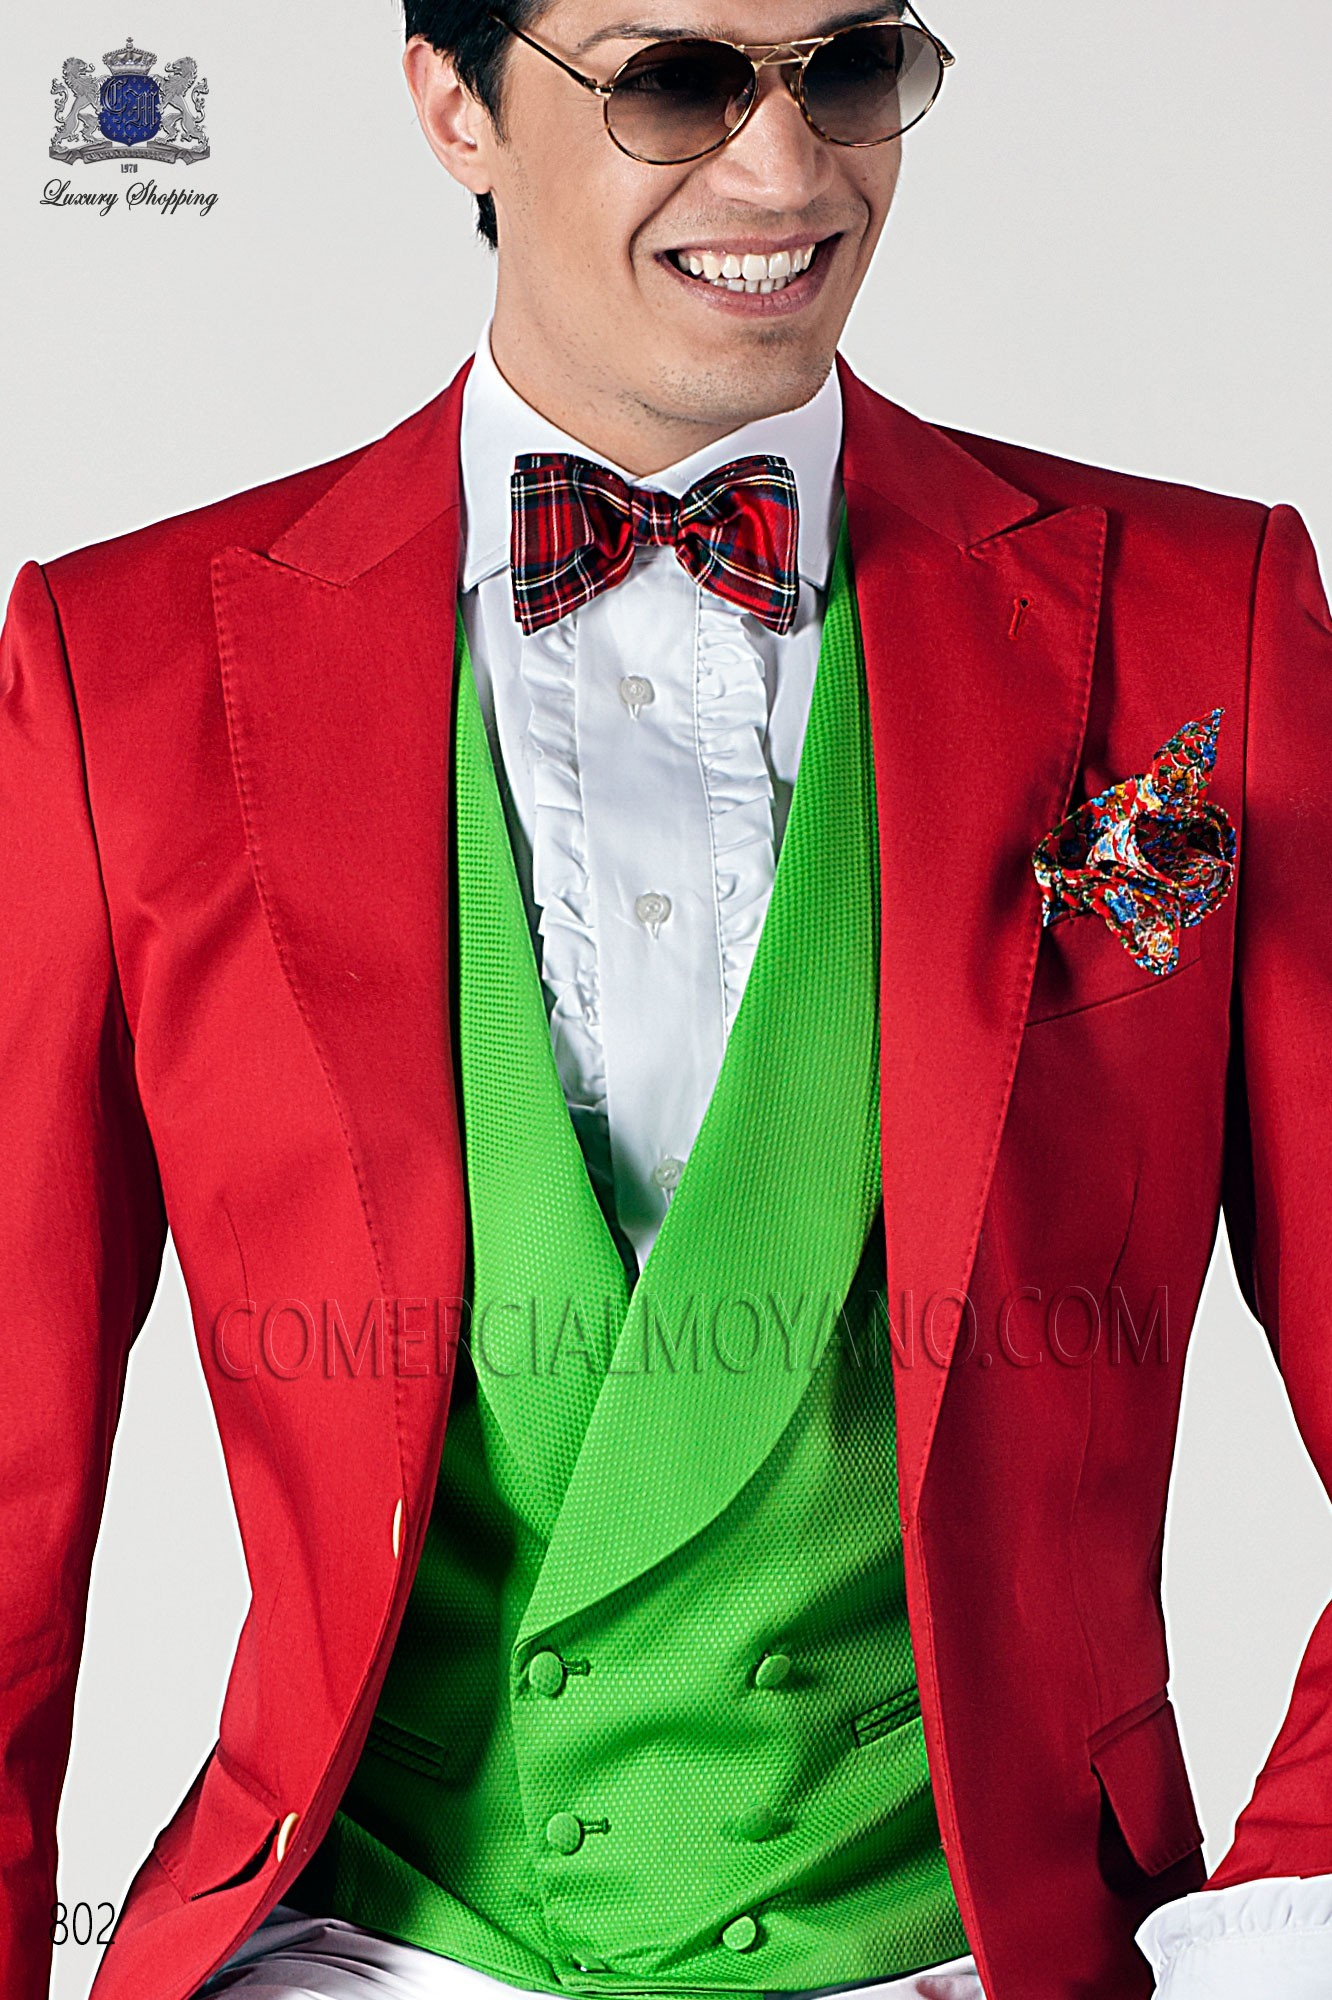 Italian hipster red men wedding suit, model: 802 Ottavio Nuccio Gala Hipster Collection